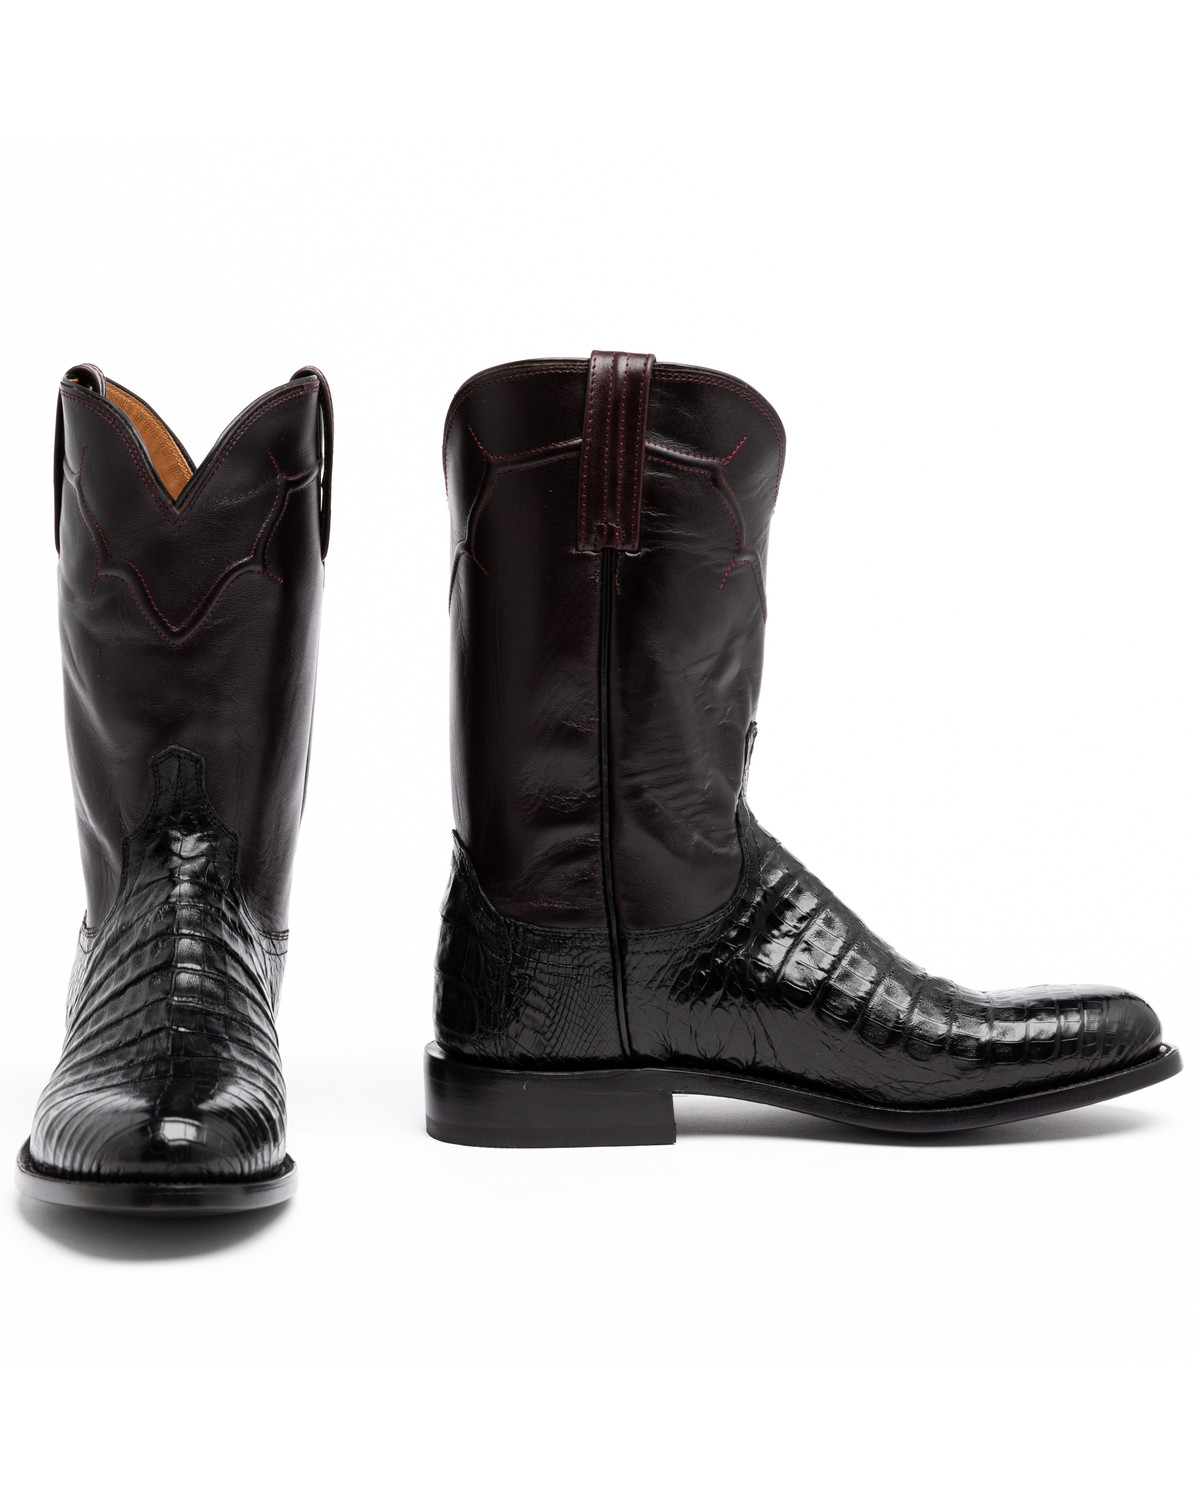 Bathroom scales boots - Lucchese Dustin Belly Caiman Roper Boots Round Toe Black Hi Res